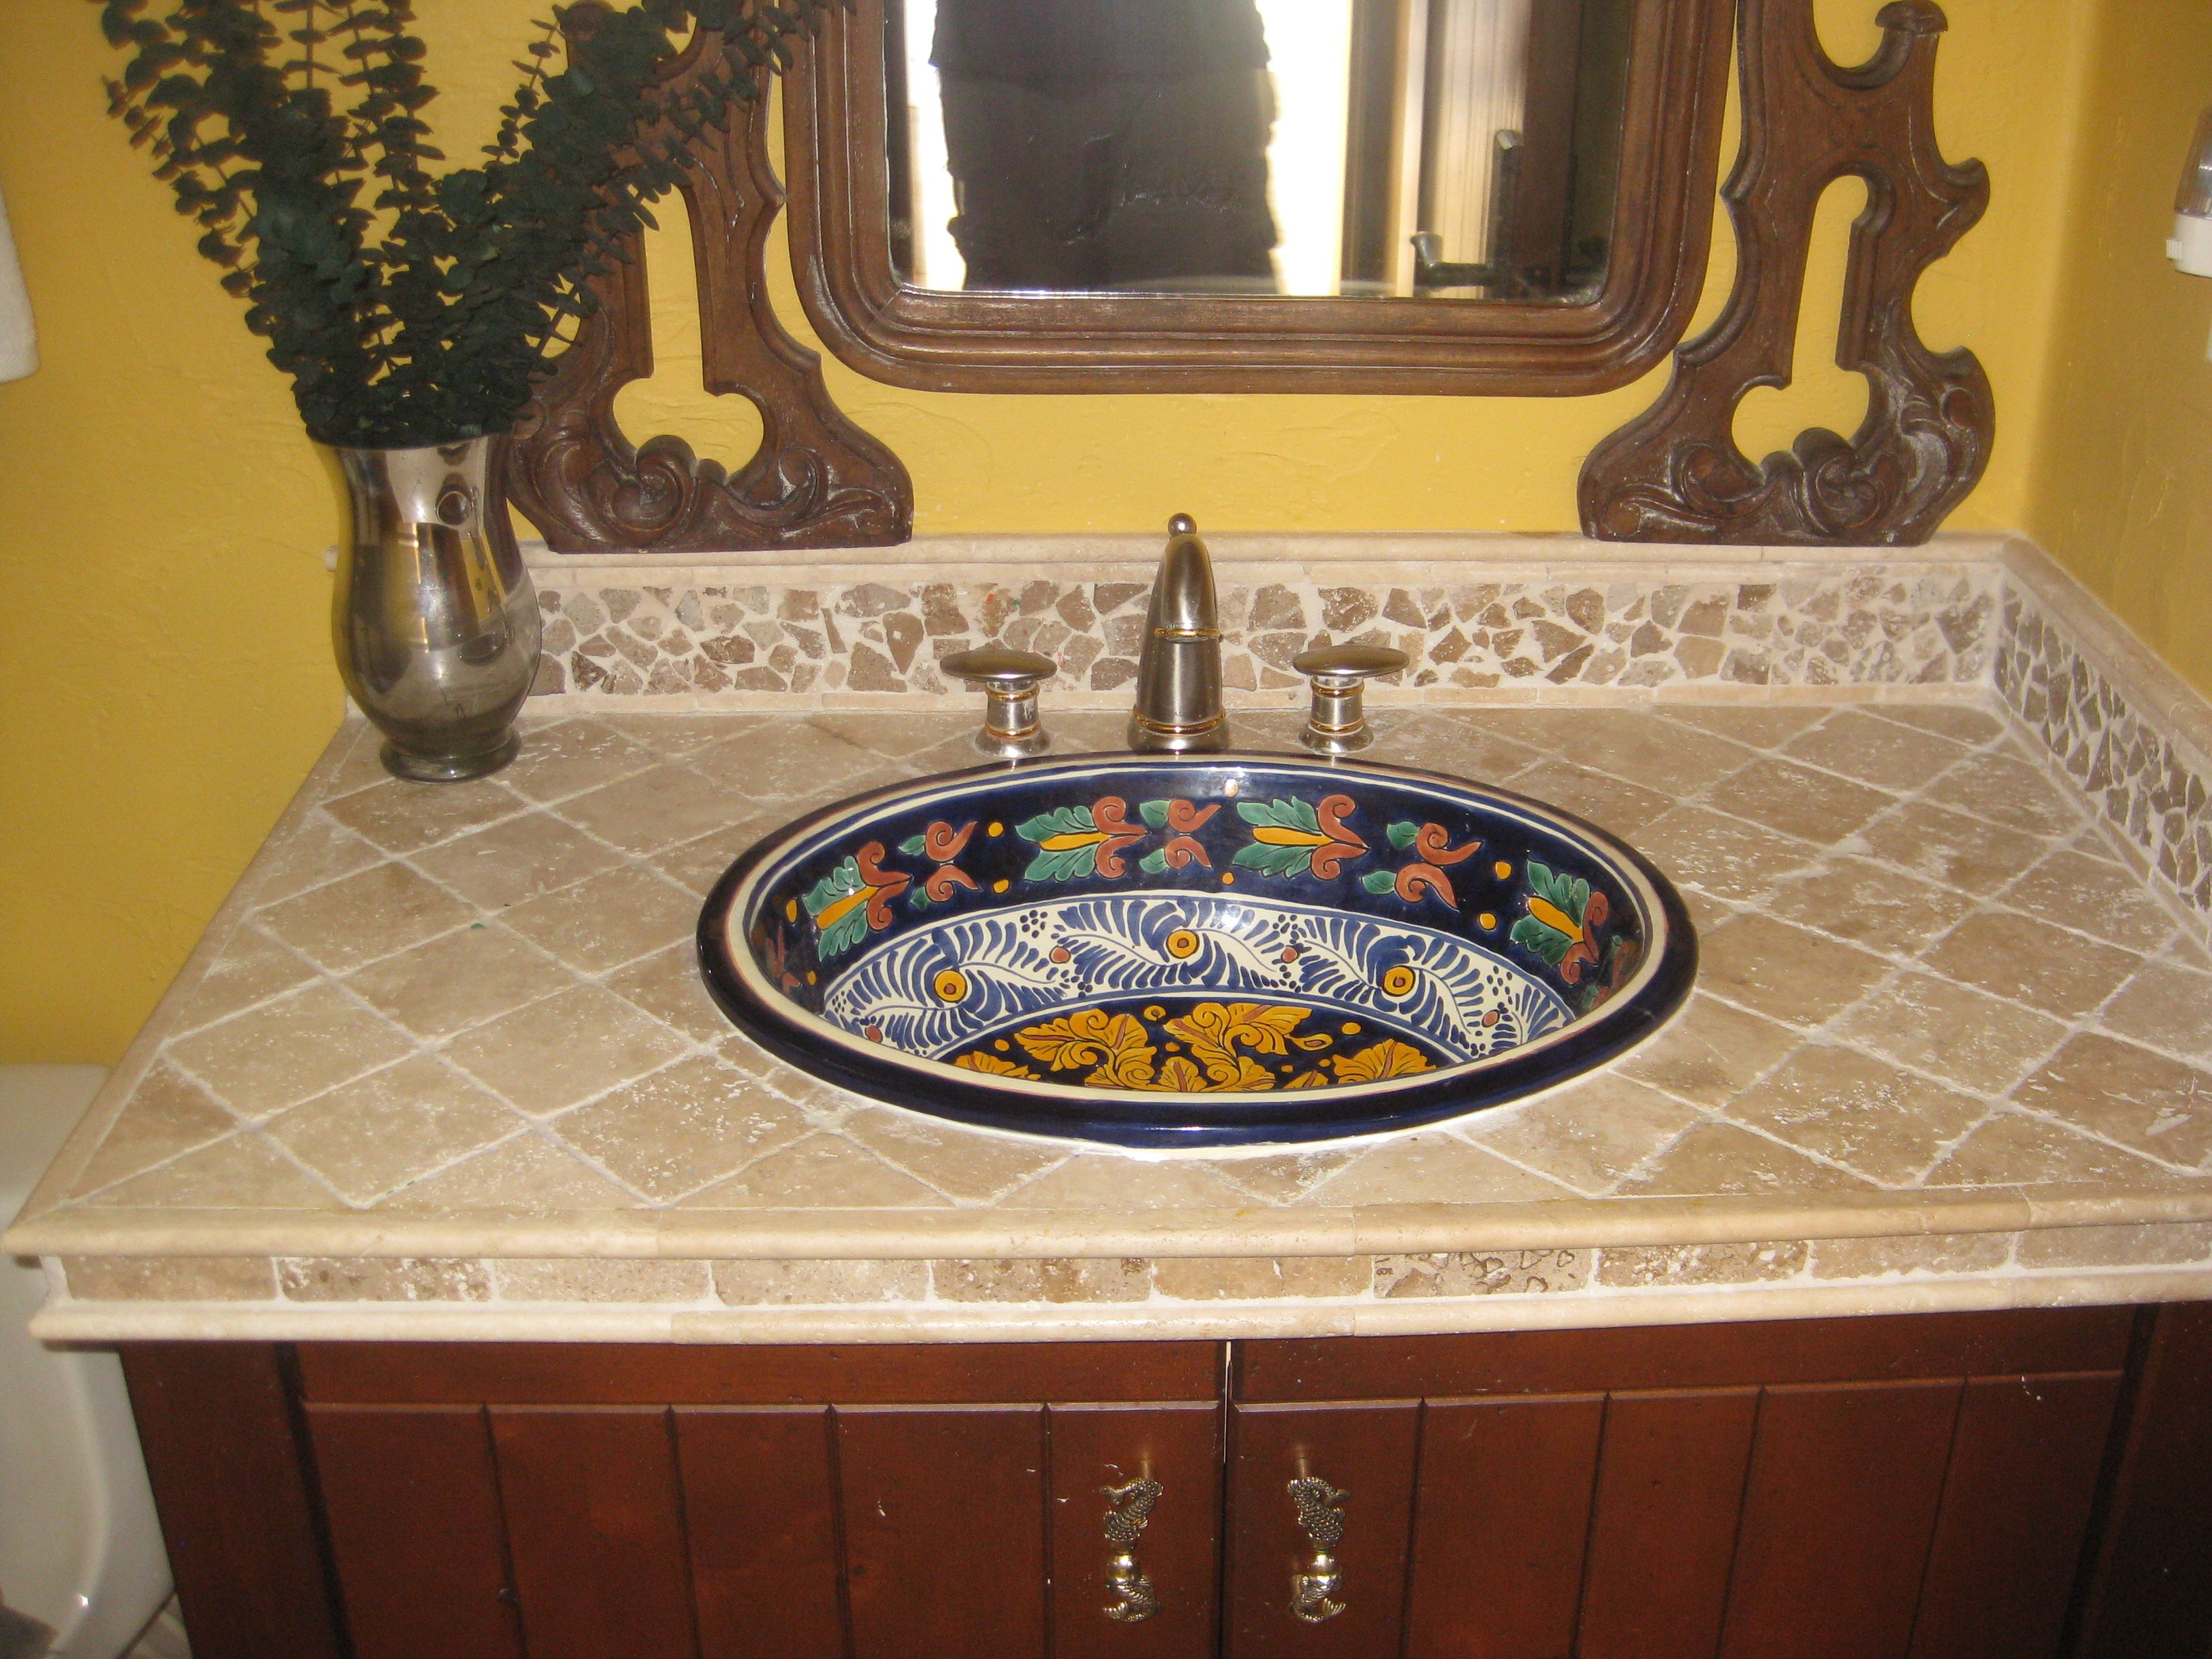 Mexican Talvera Hand Painted Mexican Sink With A Tumbled Stone Sink Top Unique Interior